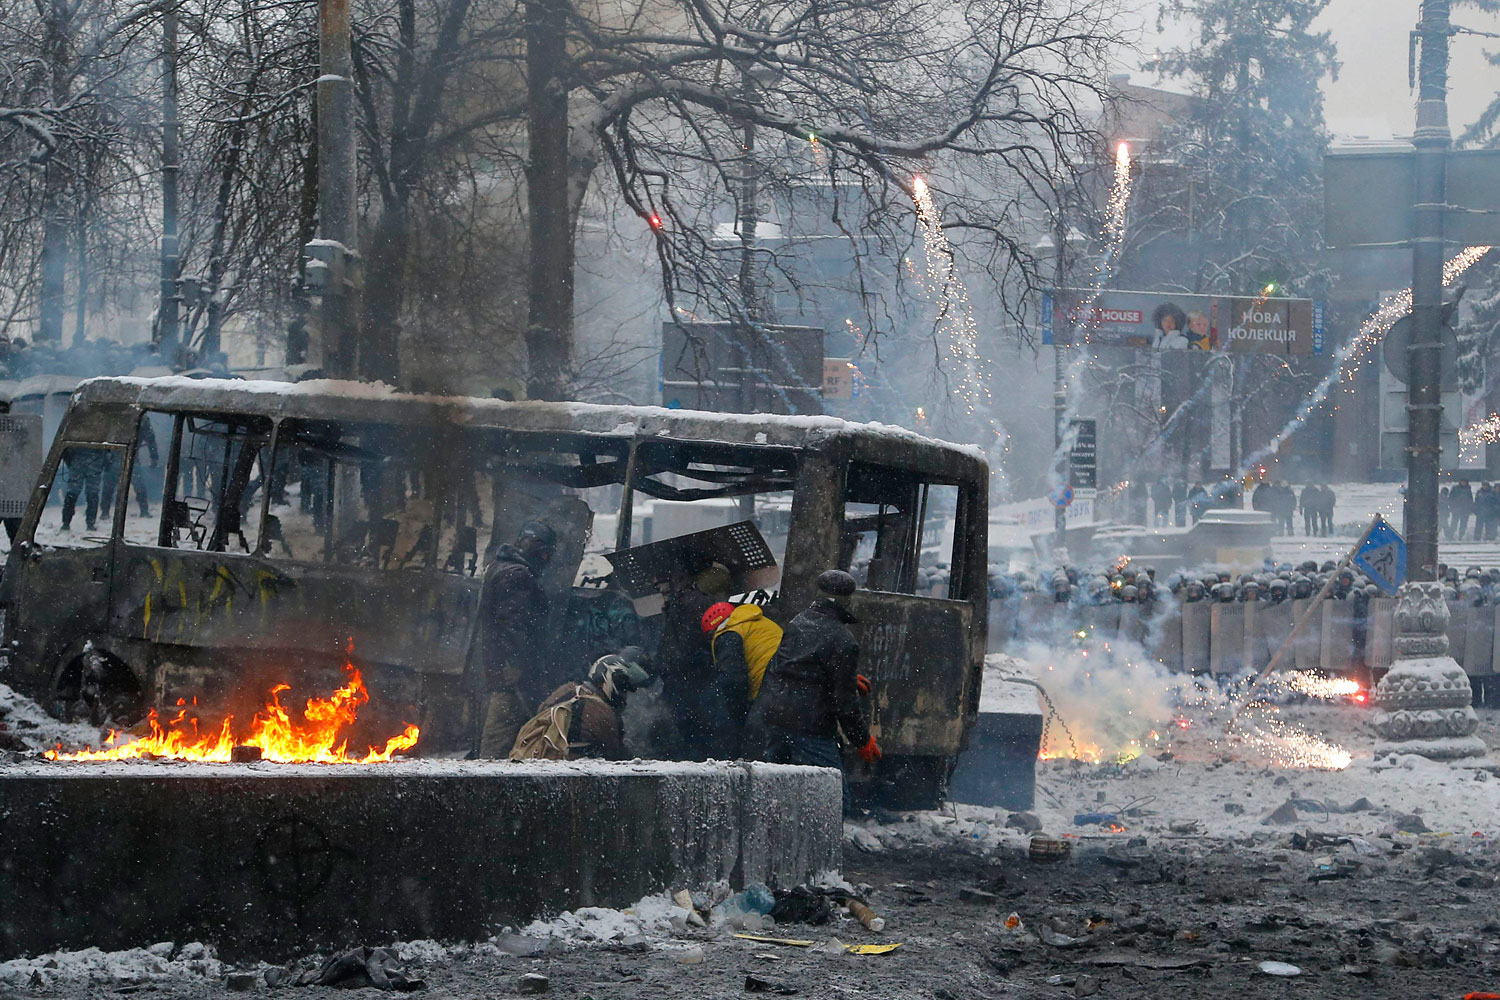 Protesters duck behind a burned vehicle as they clash with police in central Kiev, Jan. 22, 2014.